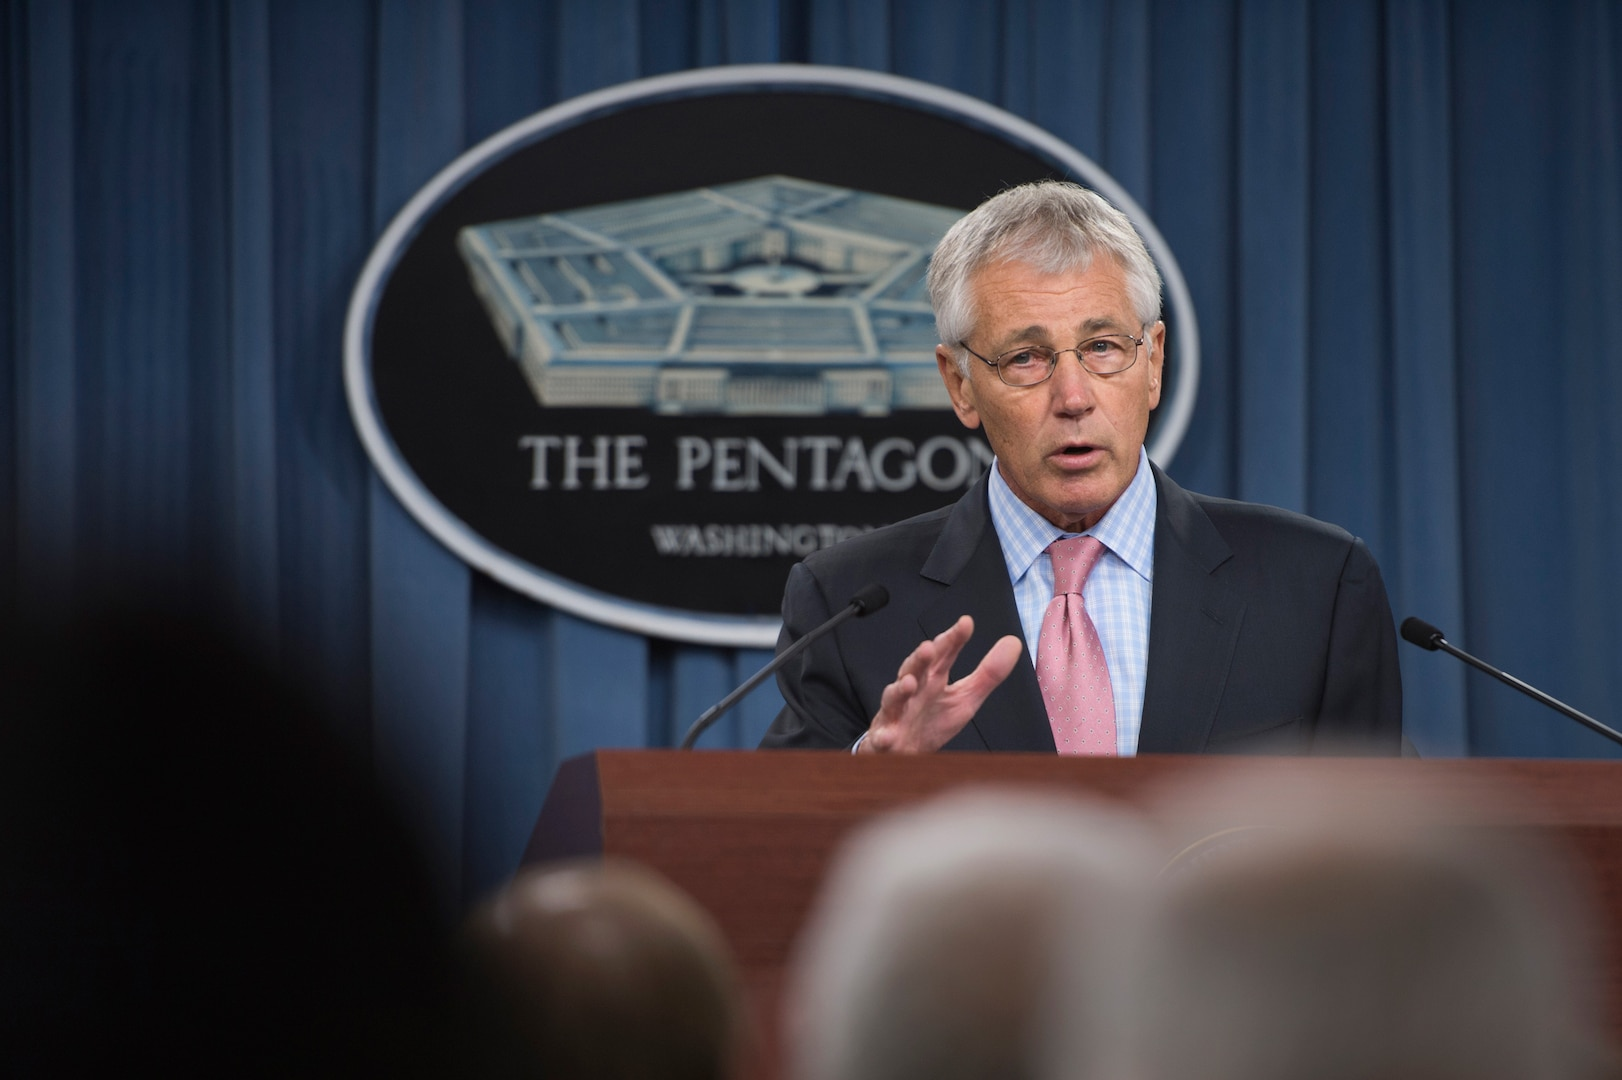 Defense Secretary Chuck Hagel talks about the government shutdown during a news conference at the Pentagon, Oct. 17, 2013.